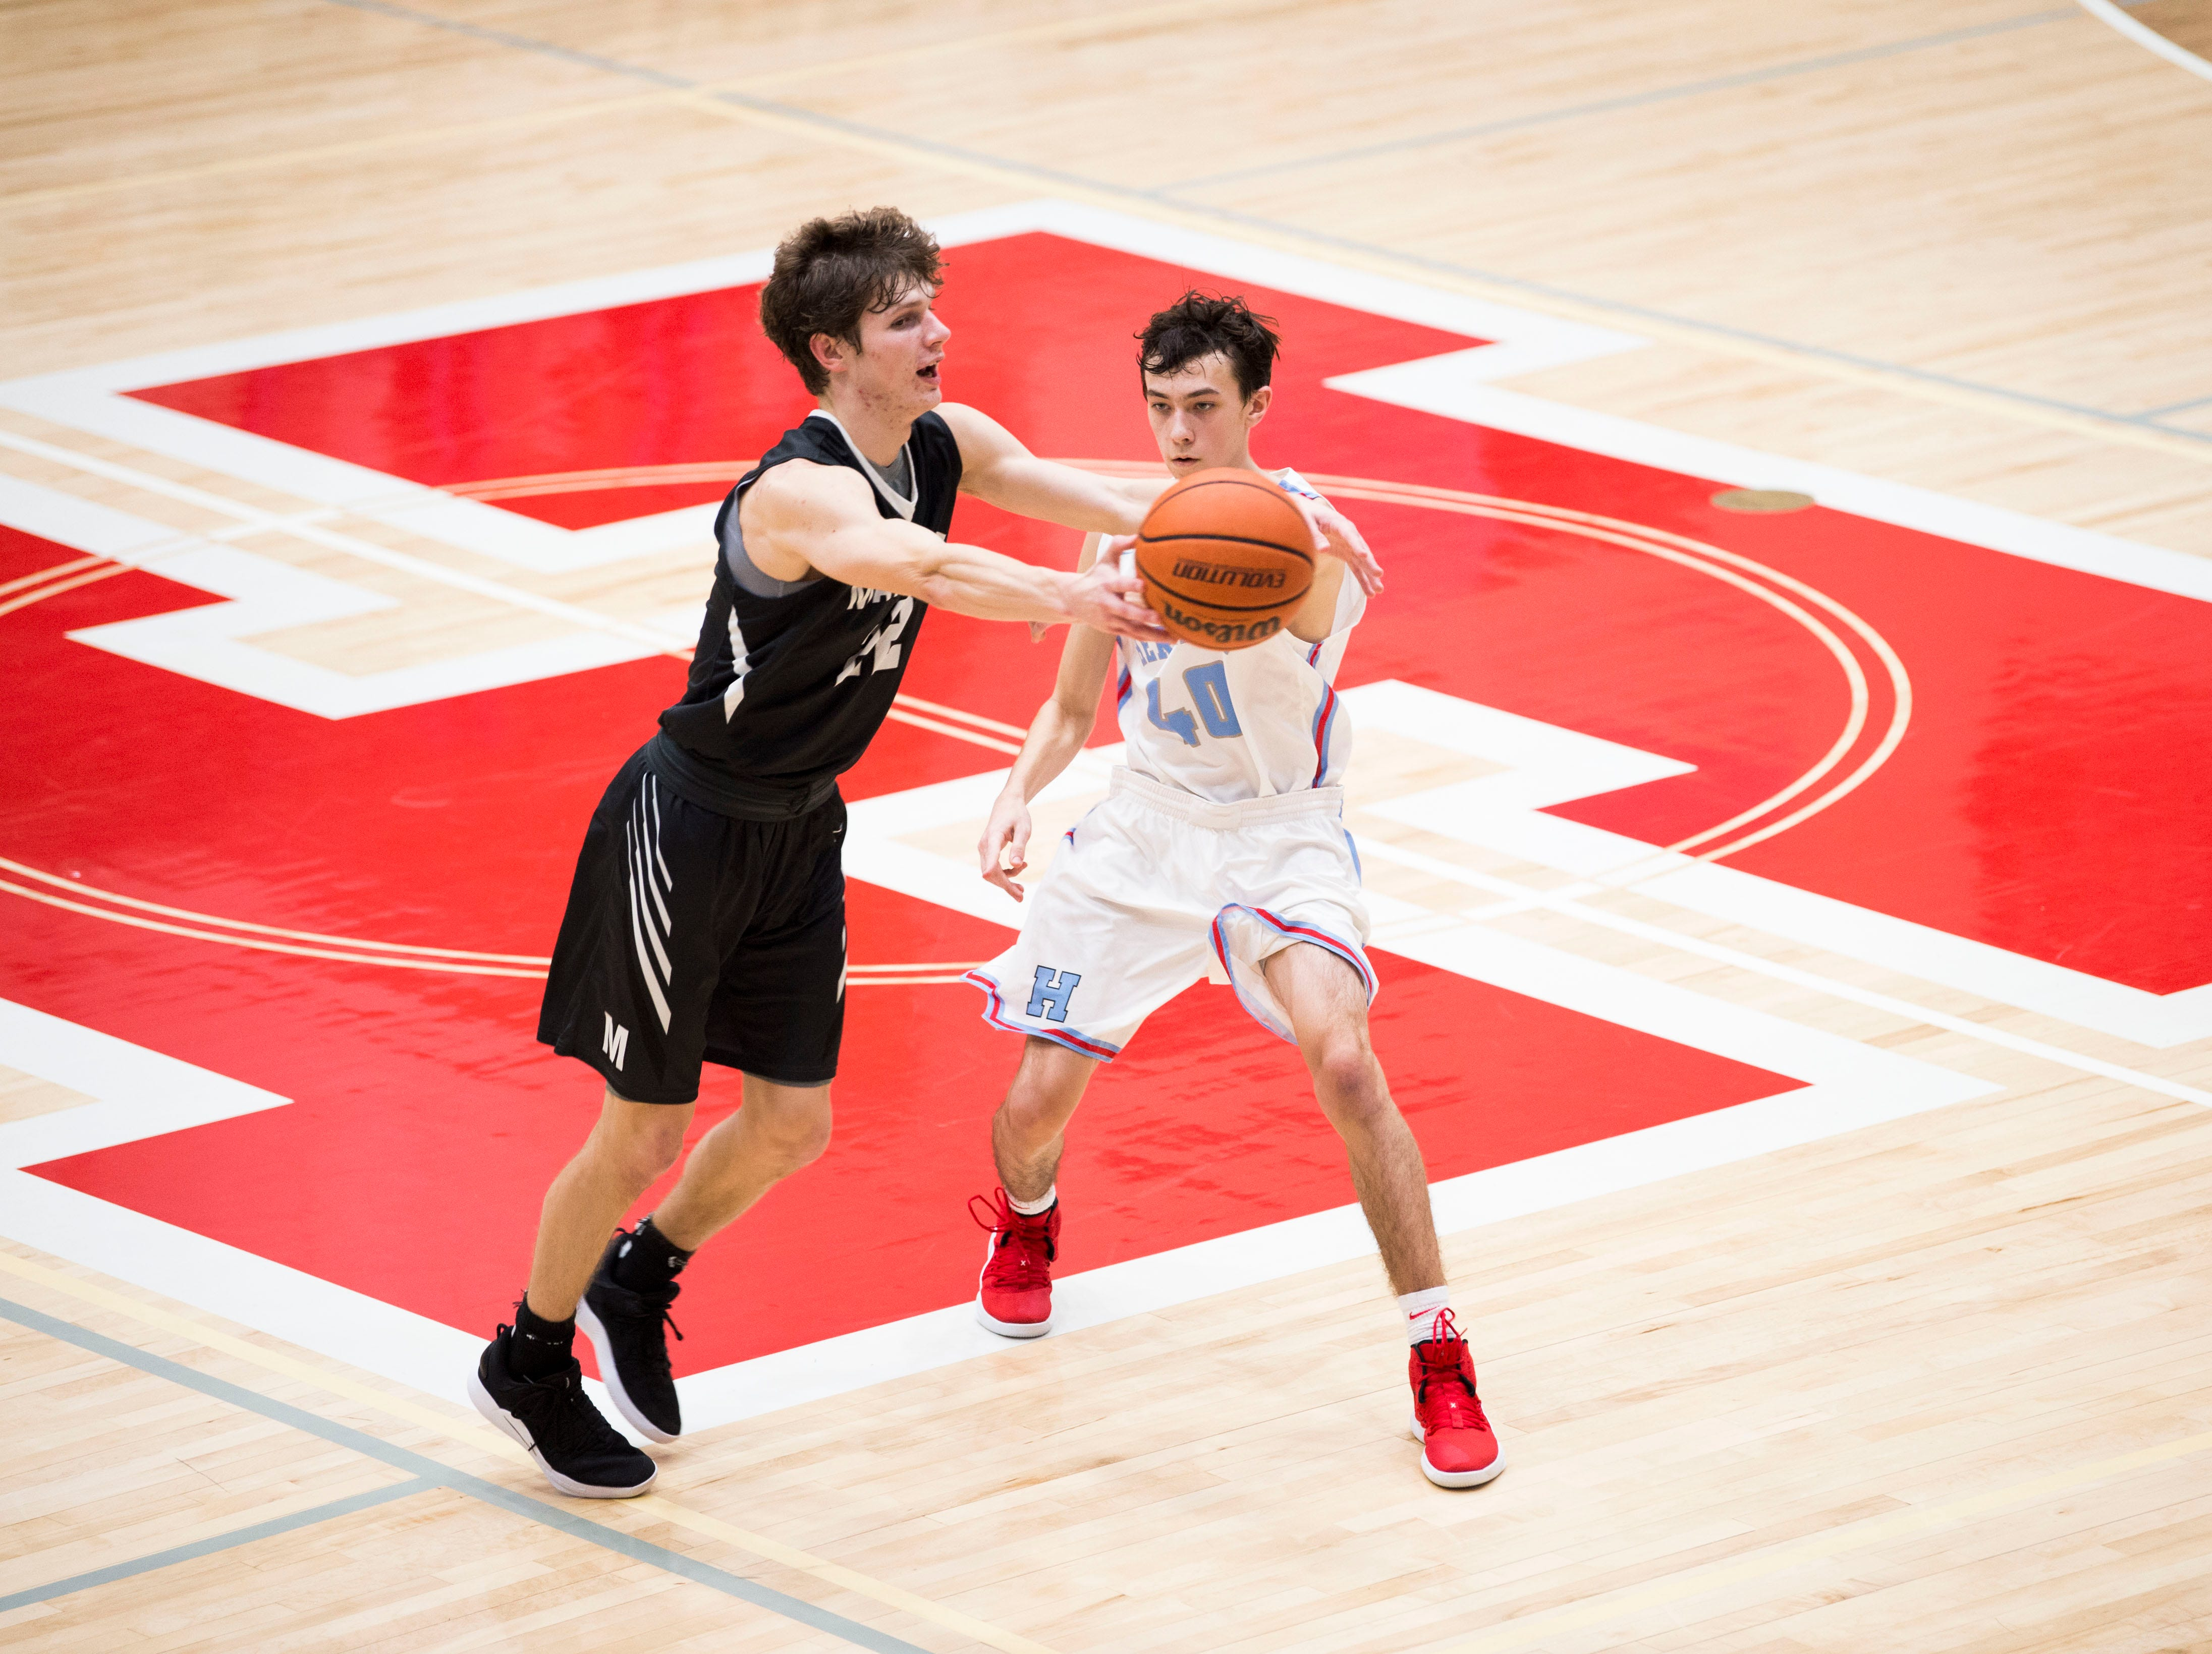 Maryville's Joe Anderson (22) defends Heritage's Brett Buckner (40)during a high school basketball game between Maryville and Heritage at Heritage Friday, Jan. 4, 2019. Both Maryville boys and girls teams beat Heritage.